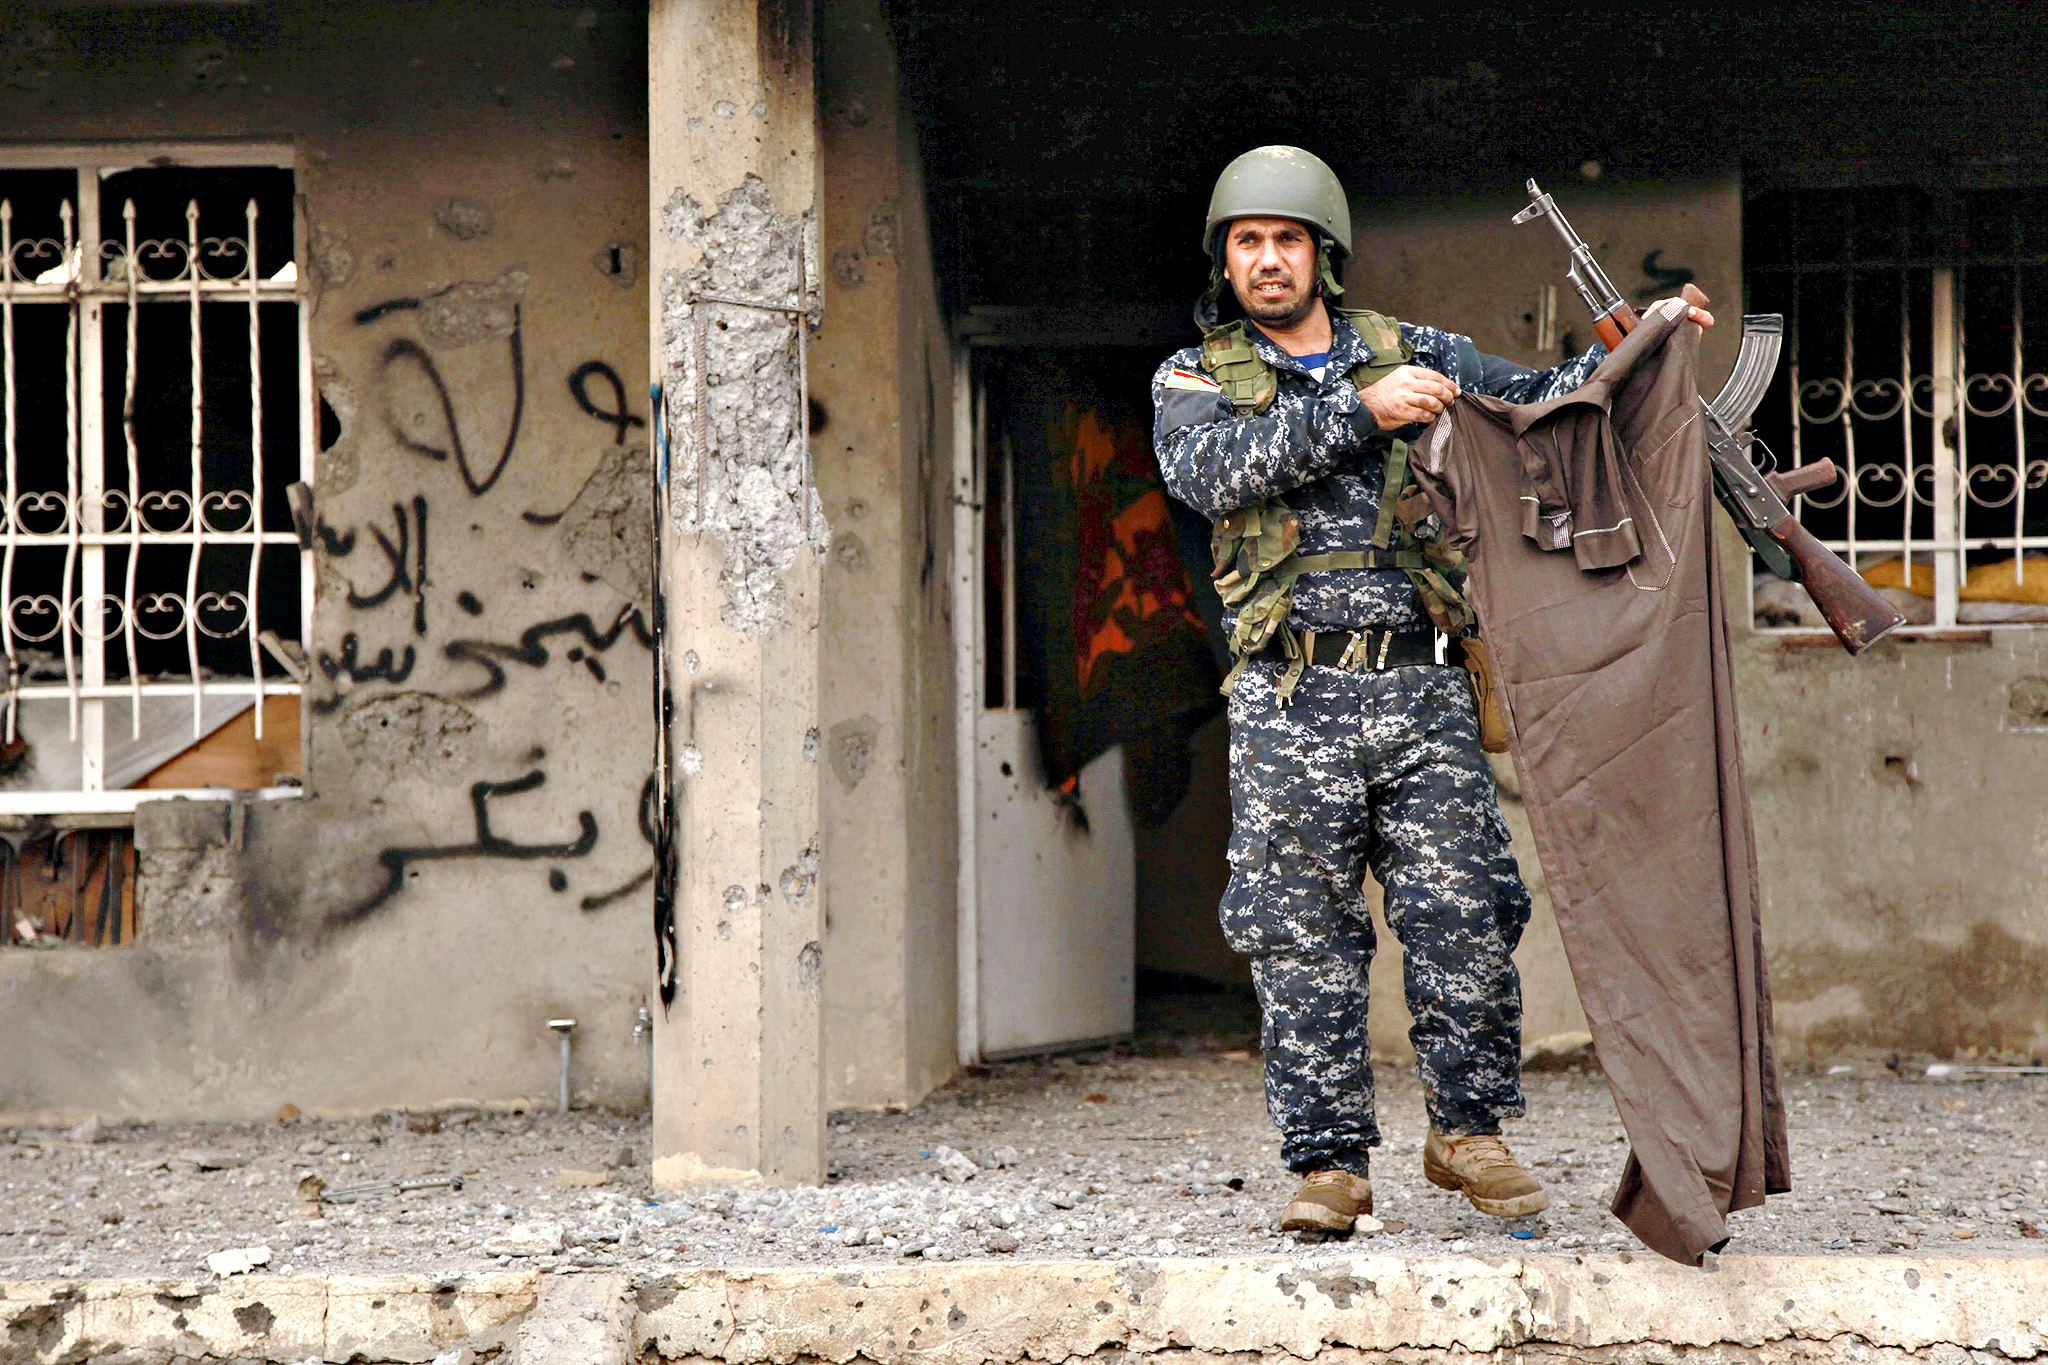 A Kurdish Peshmerga fighter holds up a piece of clothing worn by an Islamic State fighter in Kesarej village, south of Zumar, Nineveh province. Kurdish peshmerga fighters have fought their way to Iraq's Sinjar mountain and freed hundreds of people trapped there by Islamic State fighter. The assault, backed by U.S. air strikes, ended the months-long ordeal of hundreds of people from Iraq's Yazidi religious minority, who had been besieged on the mountain since Islamic State stormed Sinjar and other Kurdish-controlled parts of northern Iraq in August.